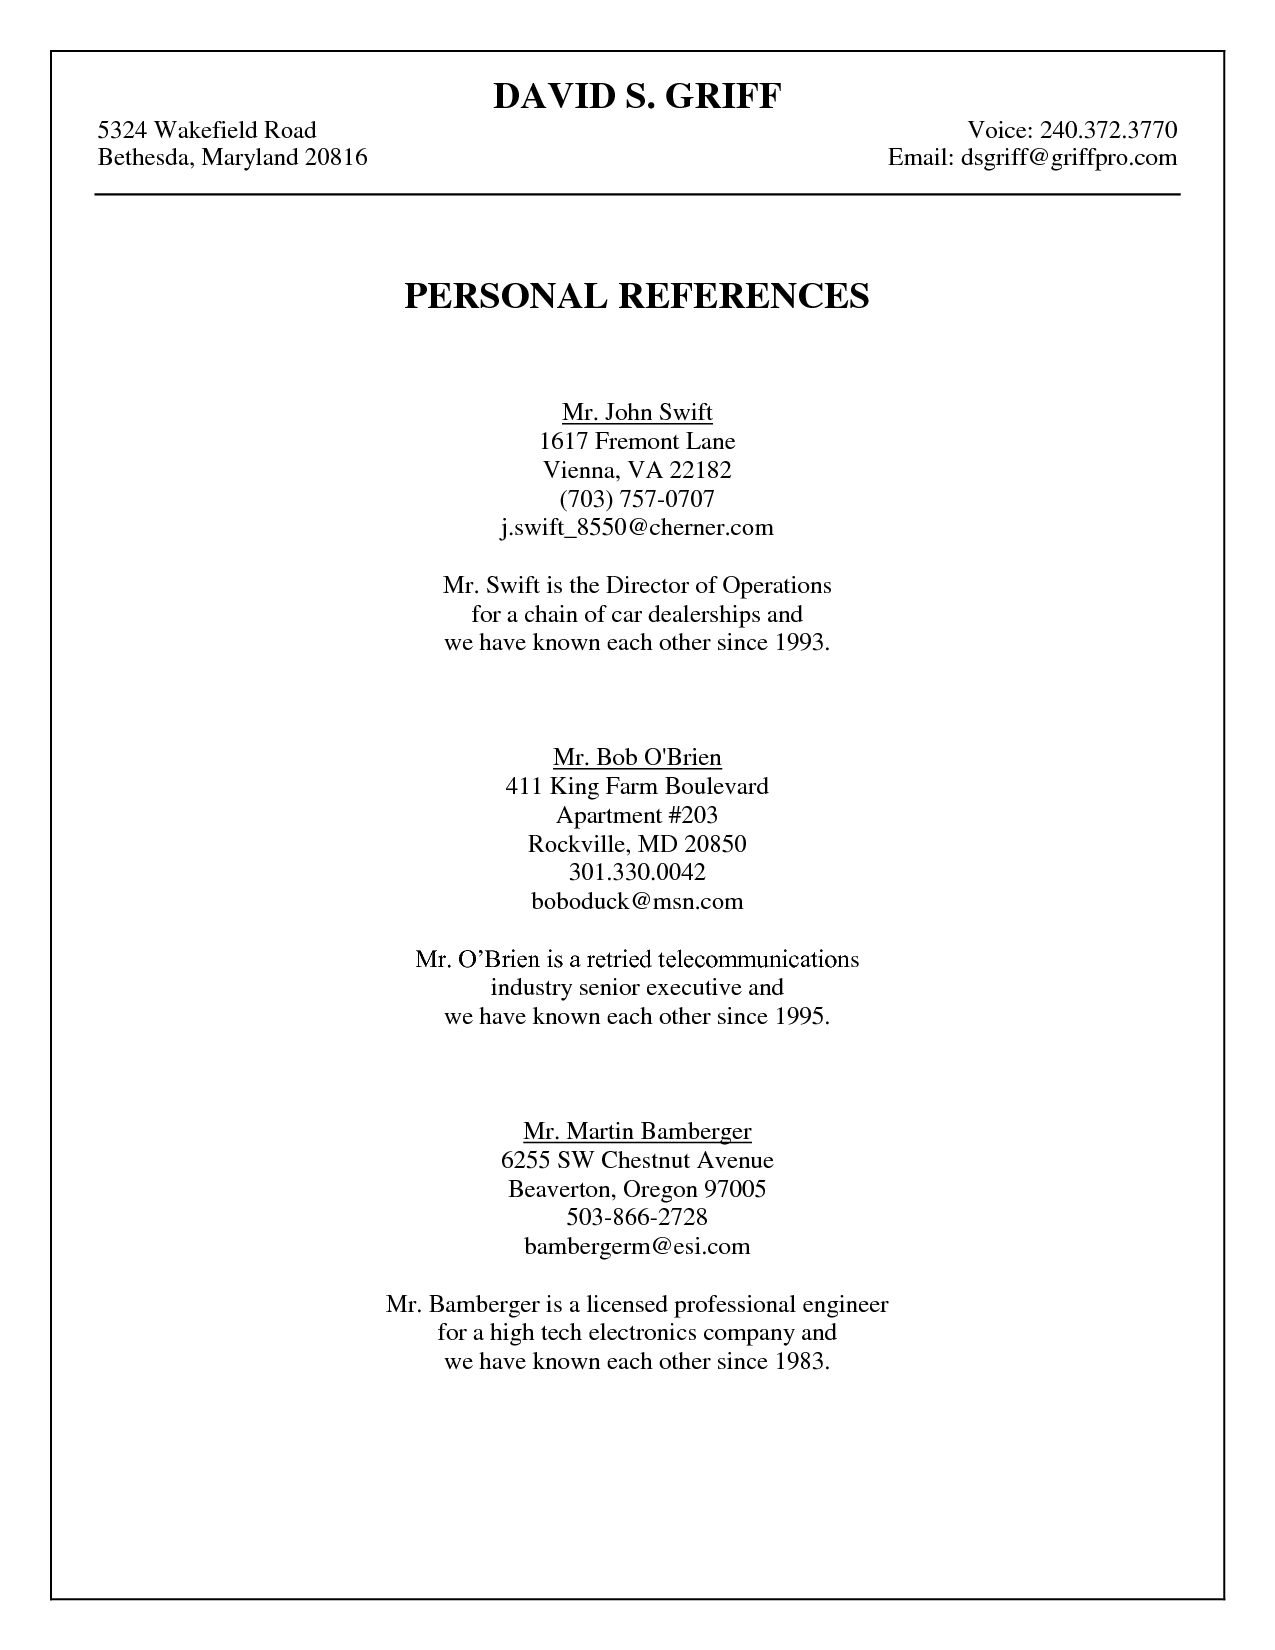 Personal Reference Template